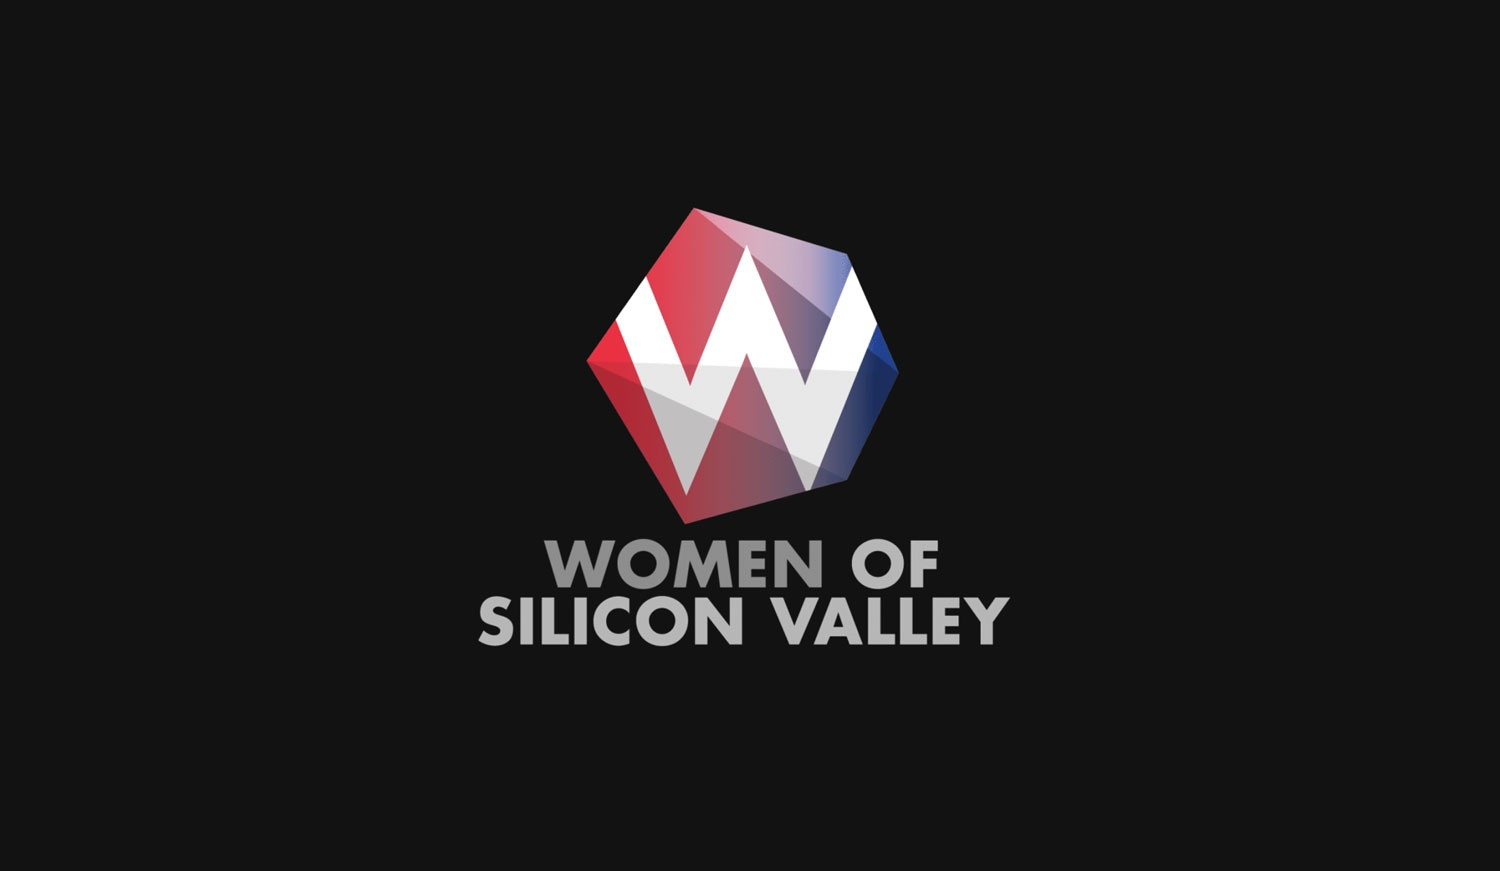 Very Director of Marketing to Speak at Women of Silicon Valley Event